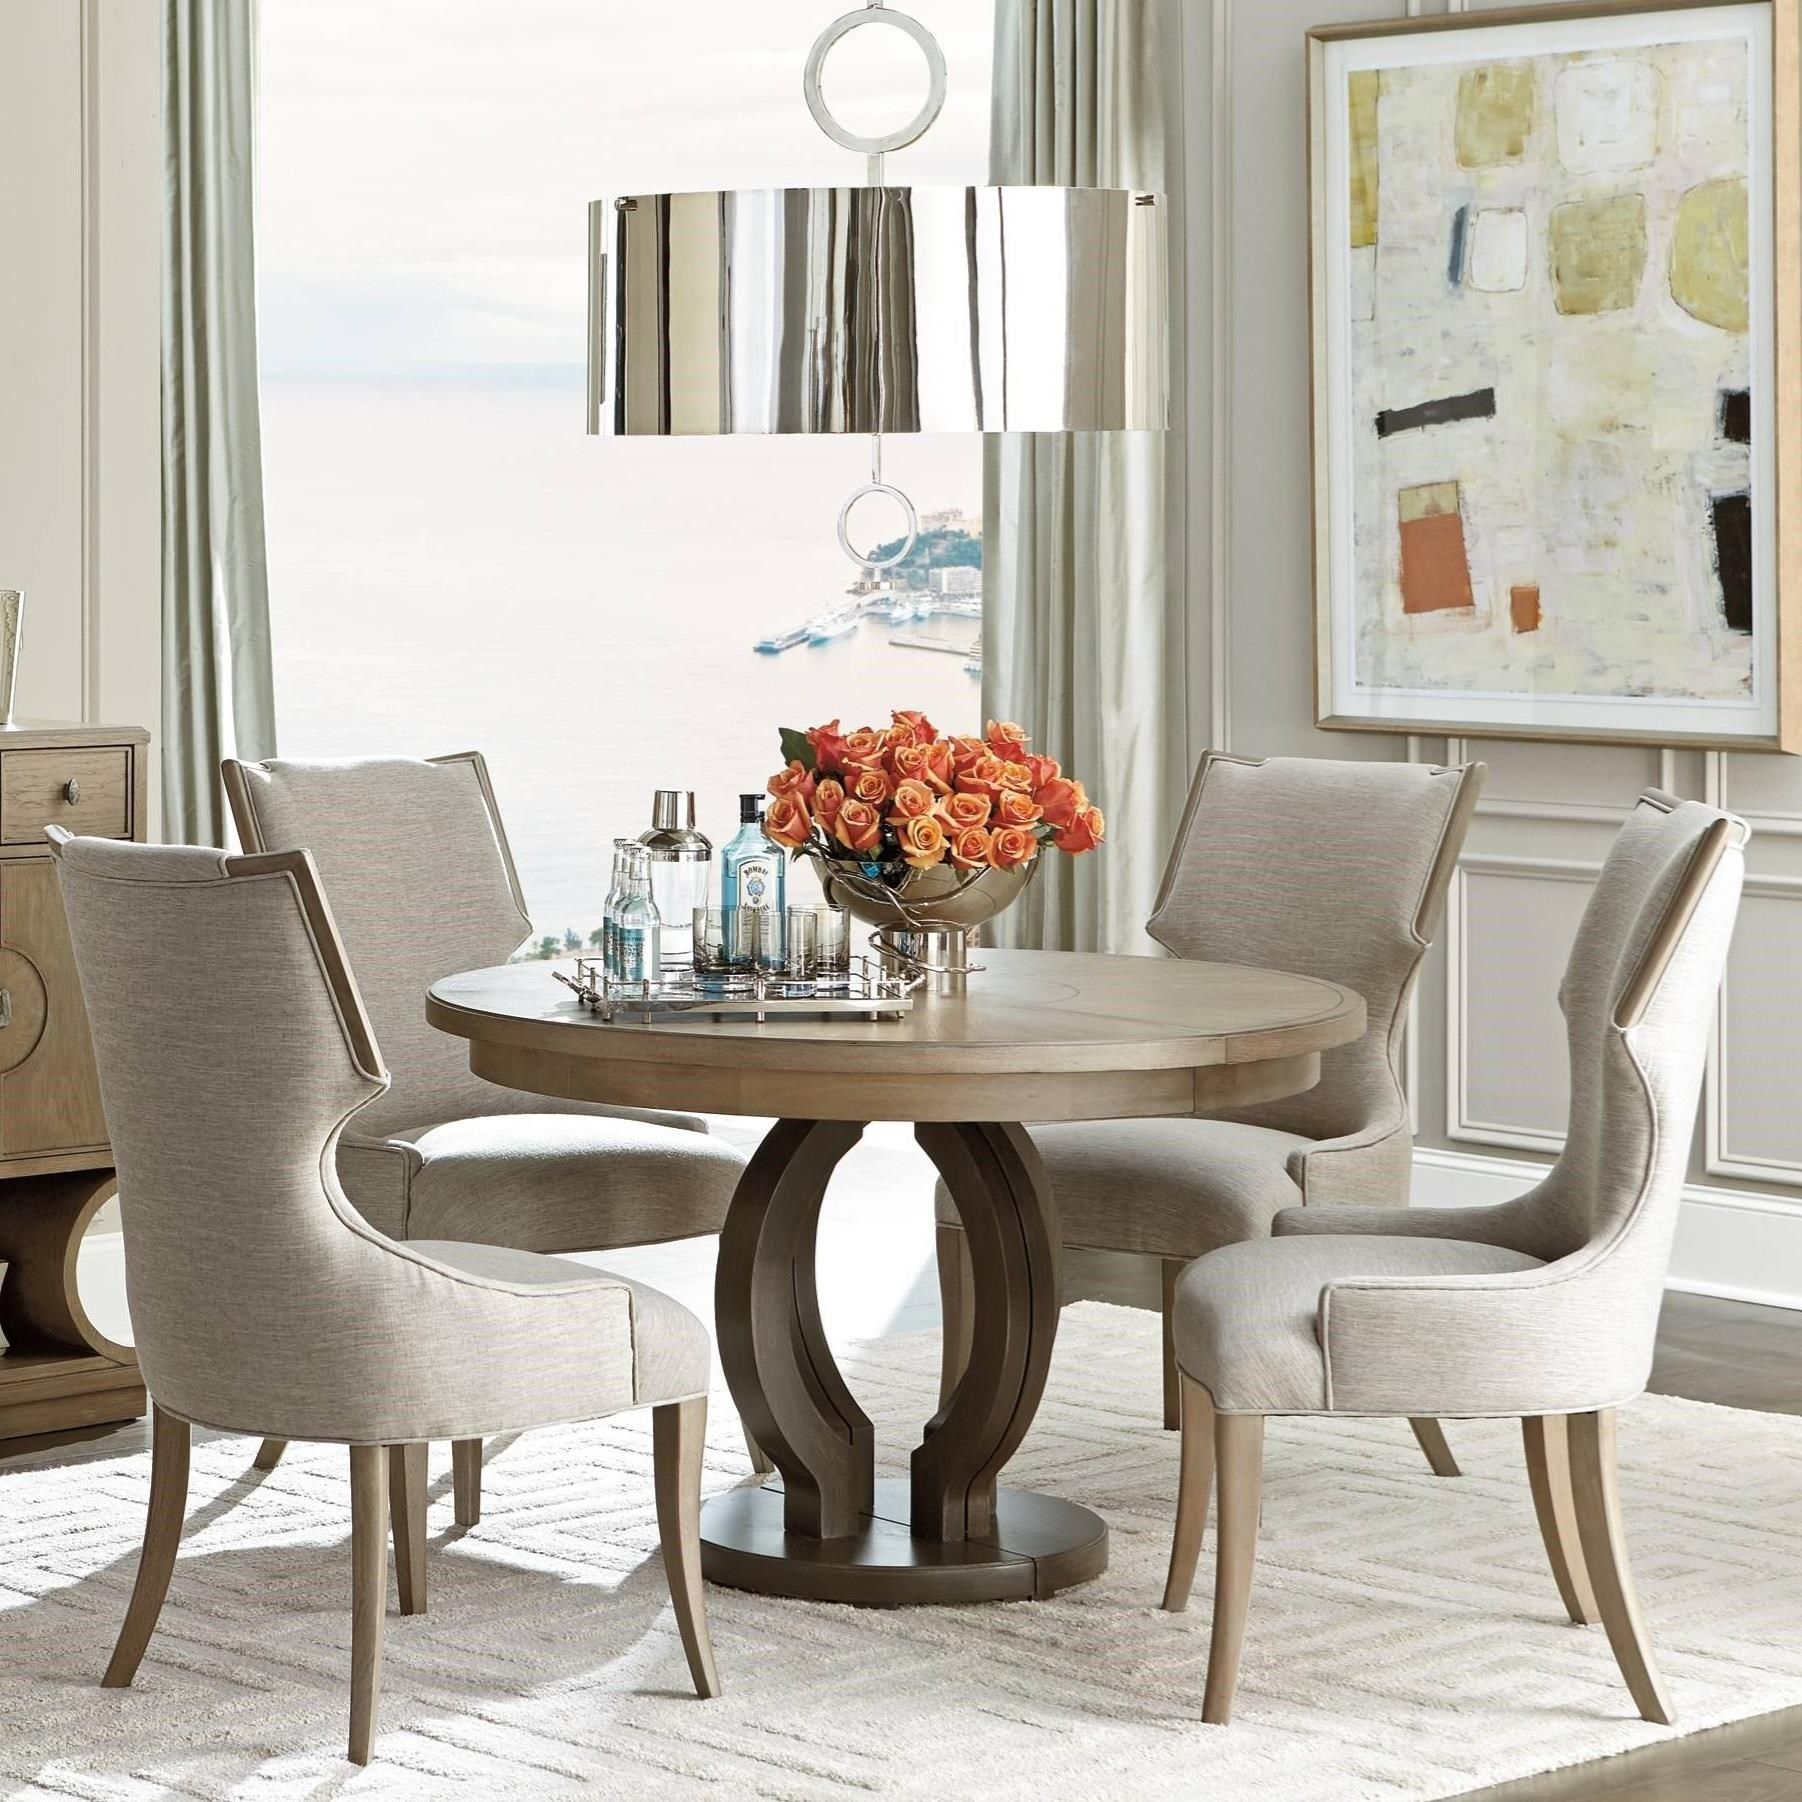 Virage 5 Piece Round Dining Table Set By Stanley Furniture Round